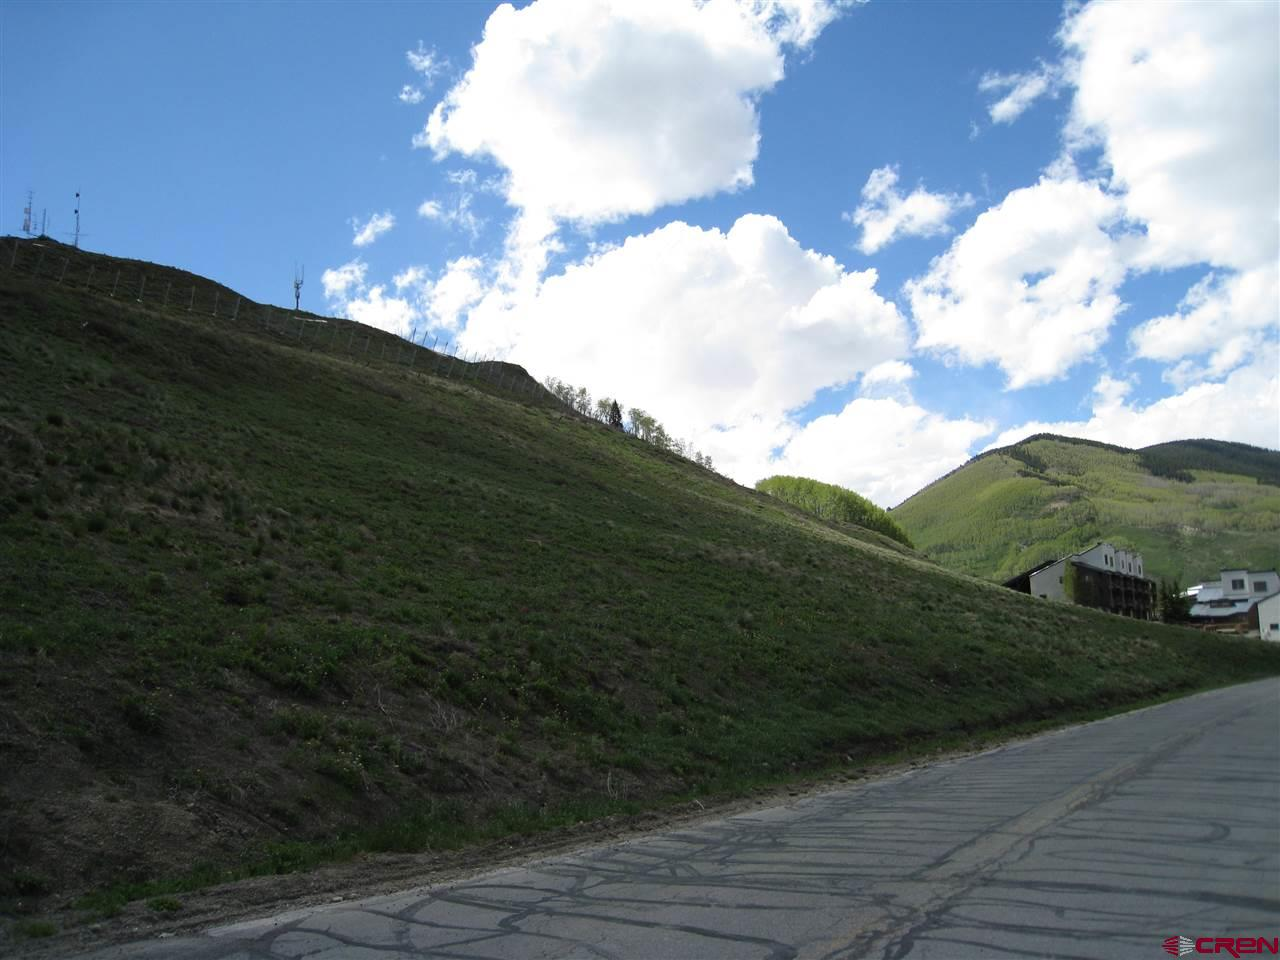 MLS# 757036 - 17 - 17 Marcellina Lane, Mt. Crested Butte, CO 81225